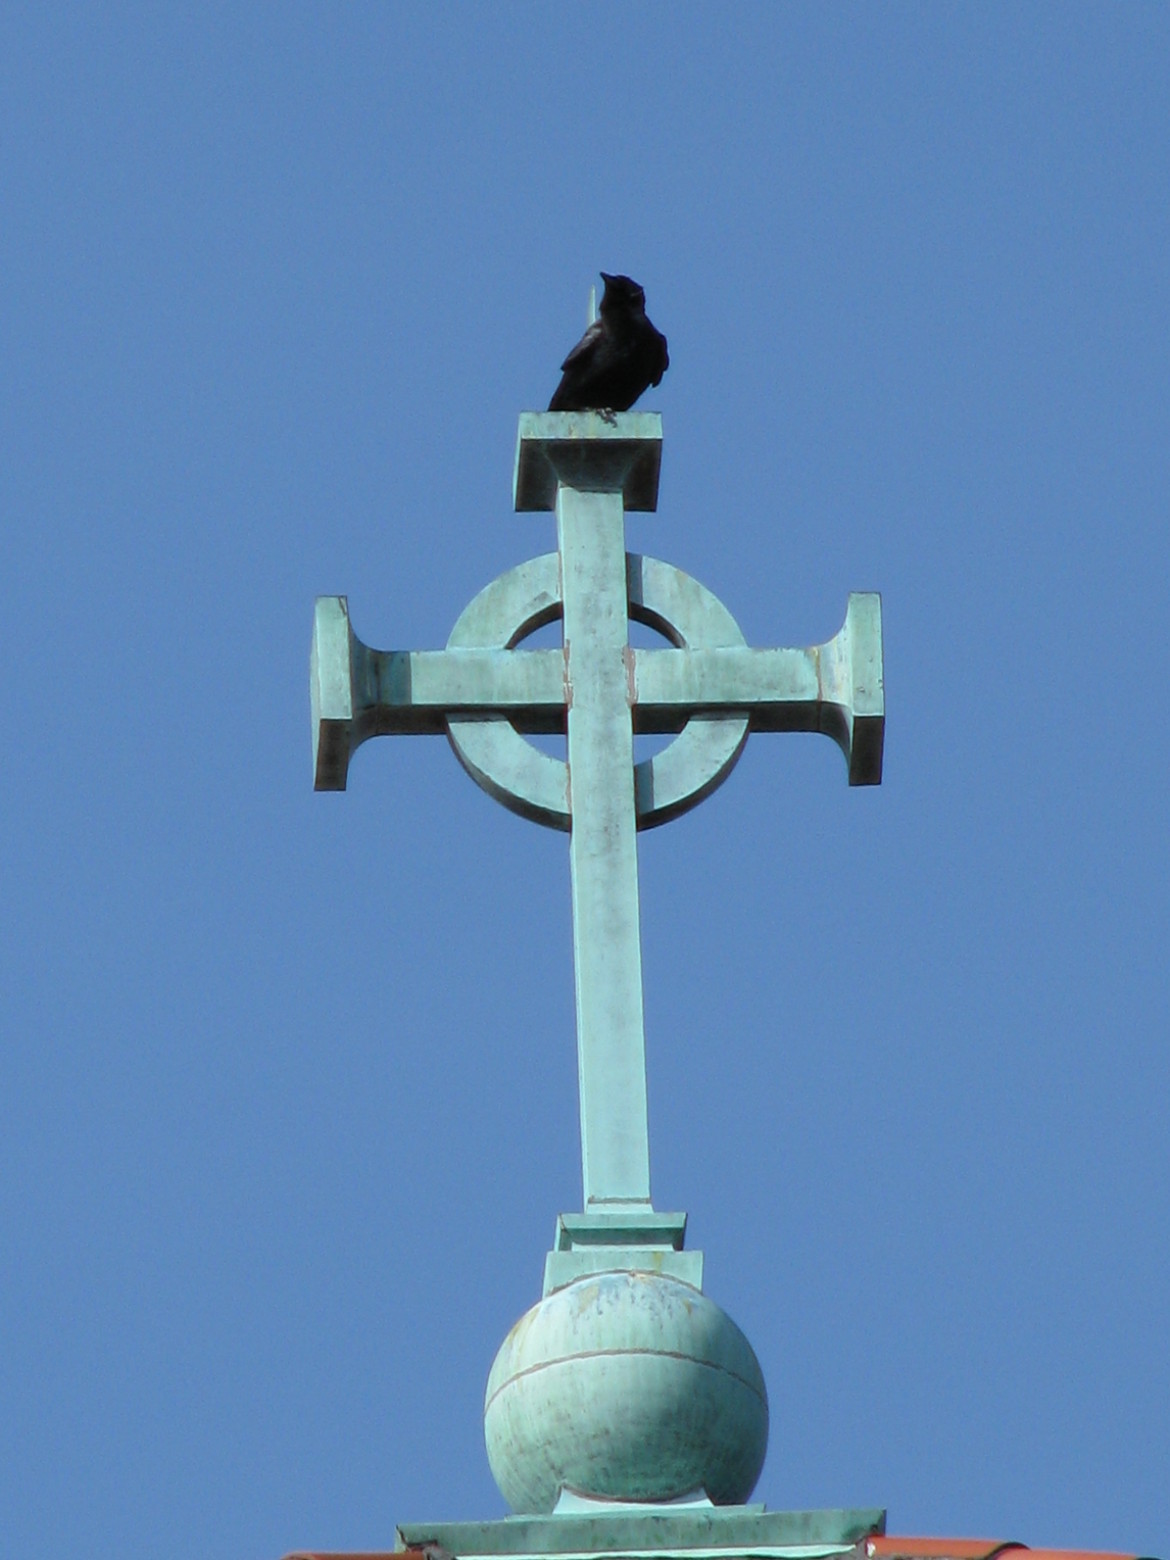 A seat on top of the copper cross must certainly afford a good view.